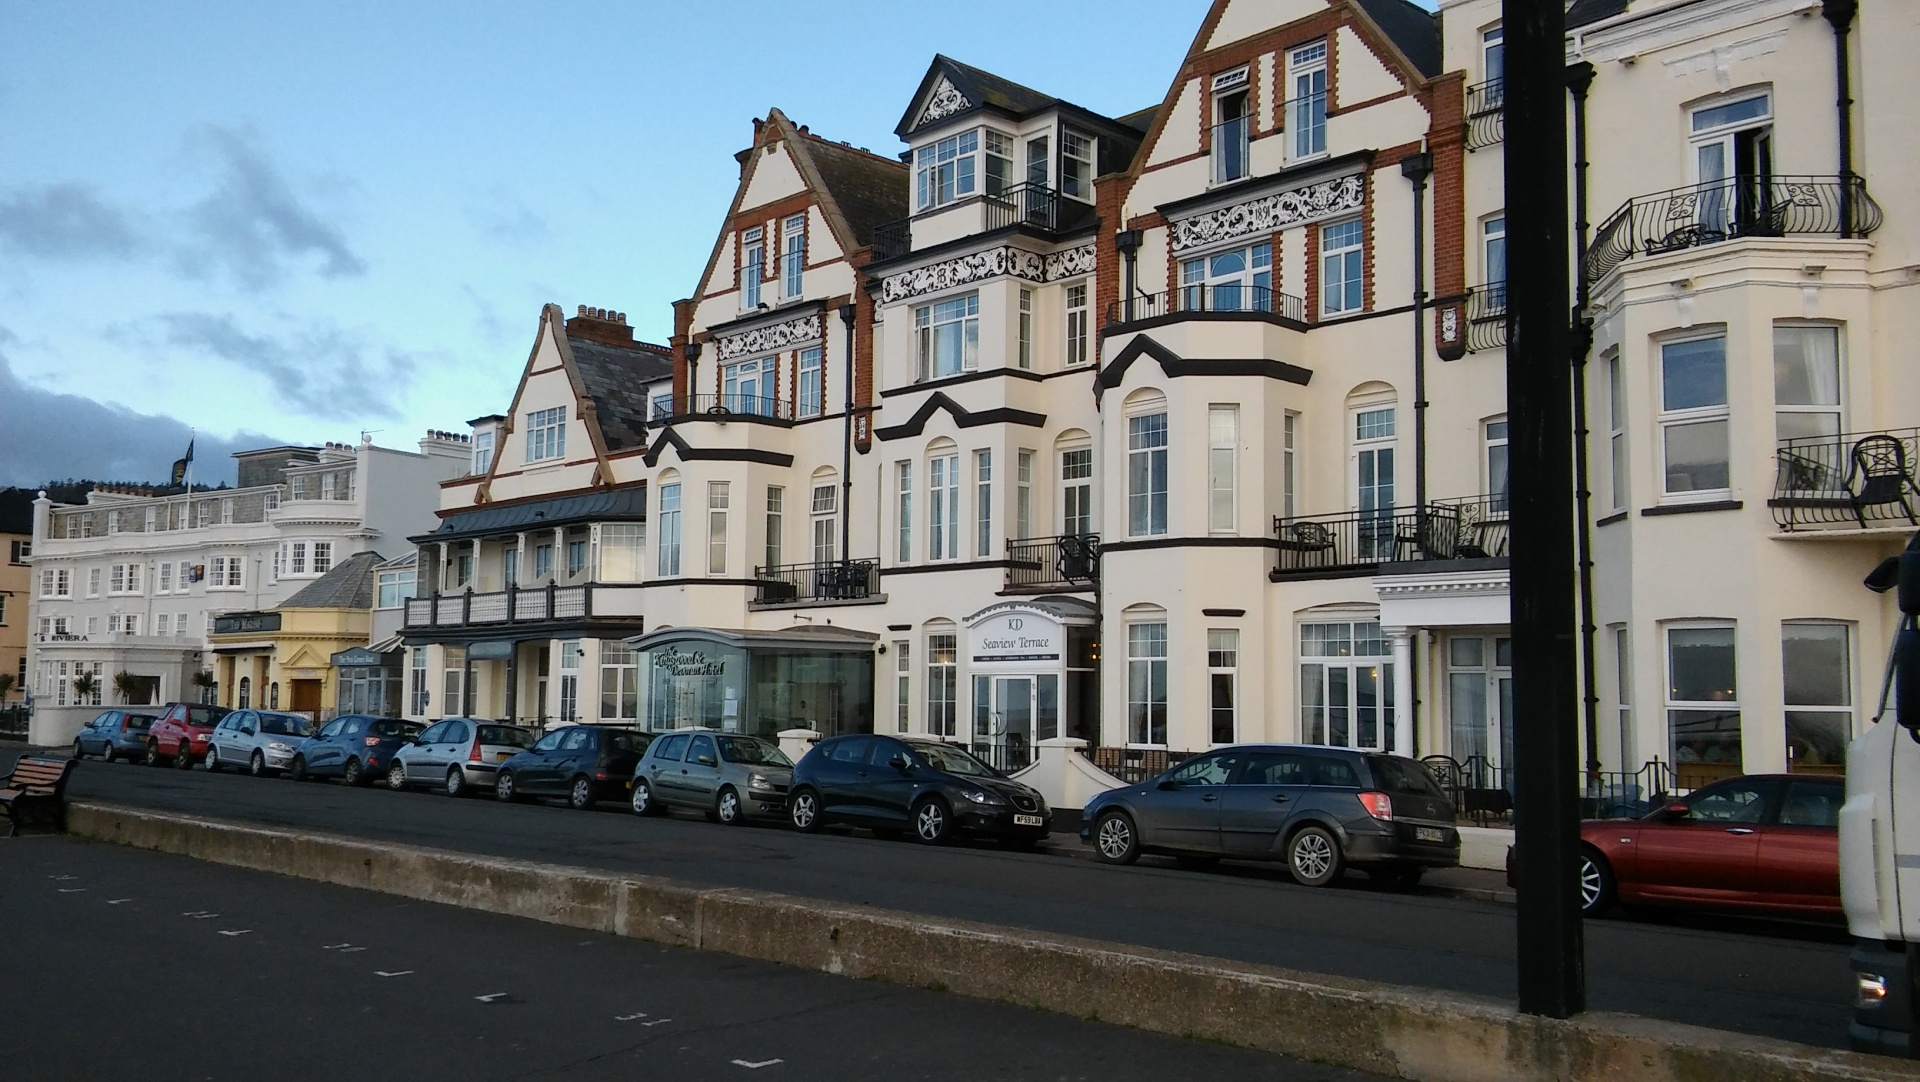 ex10-sidmouth-the-kingswood-and-devoran-hotel